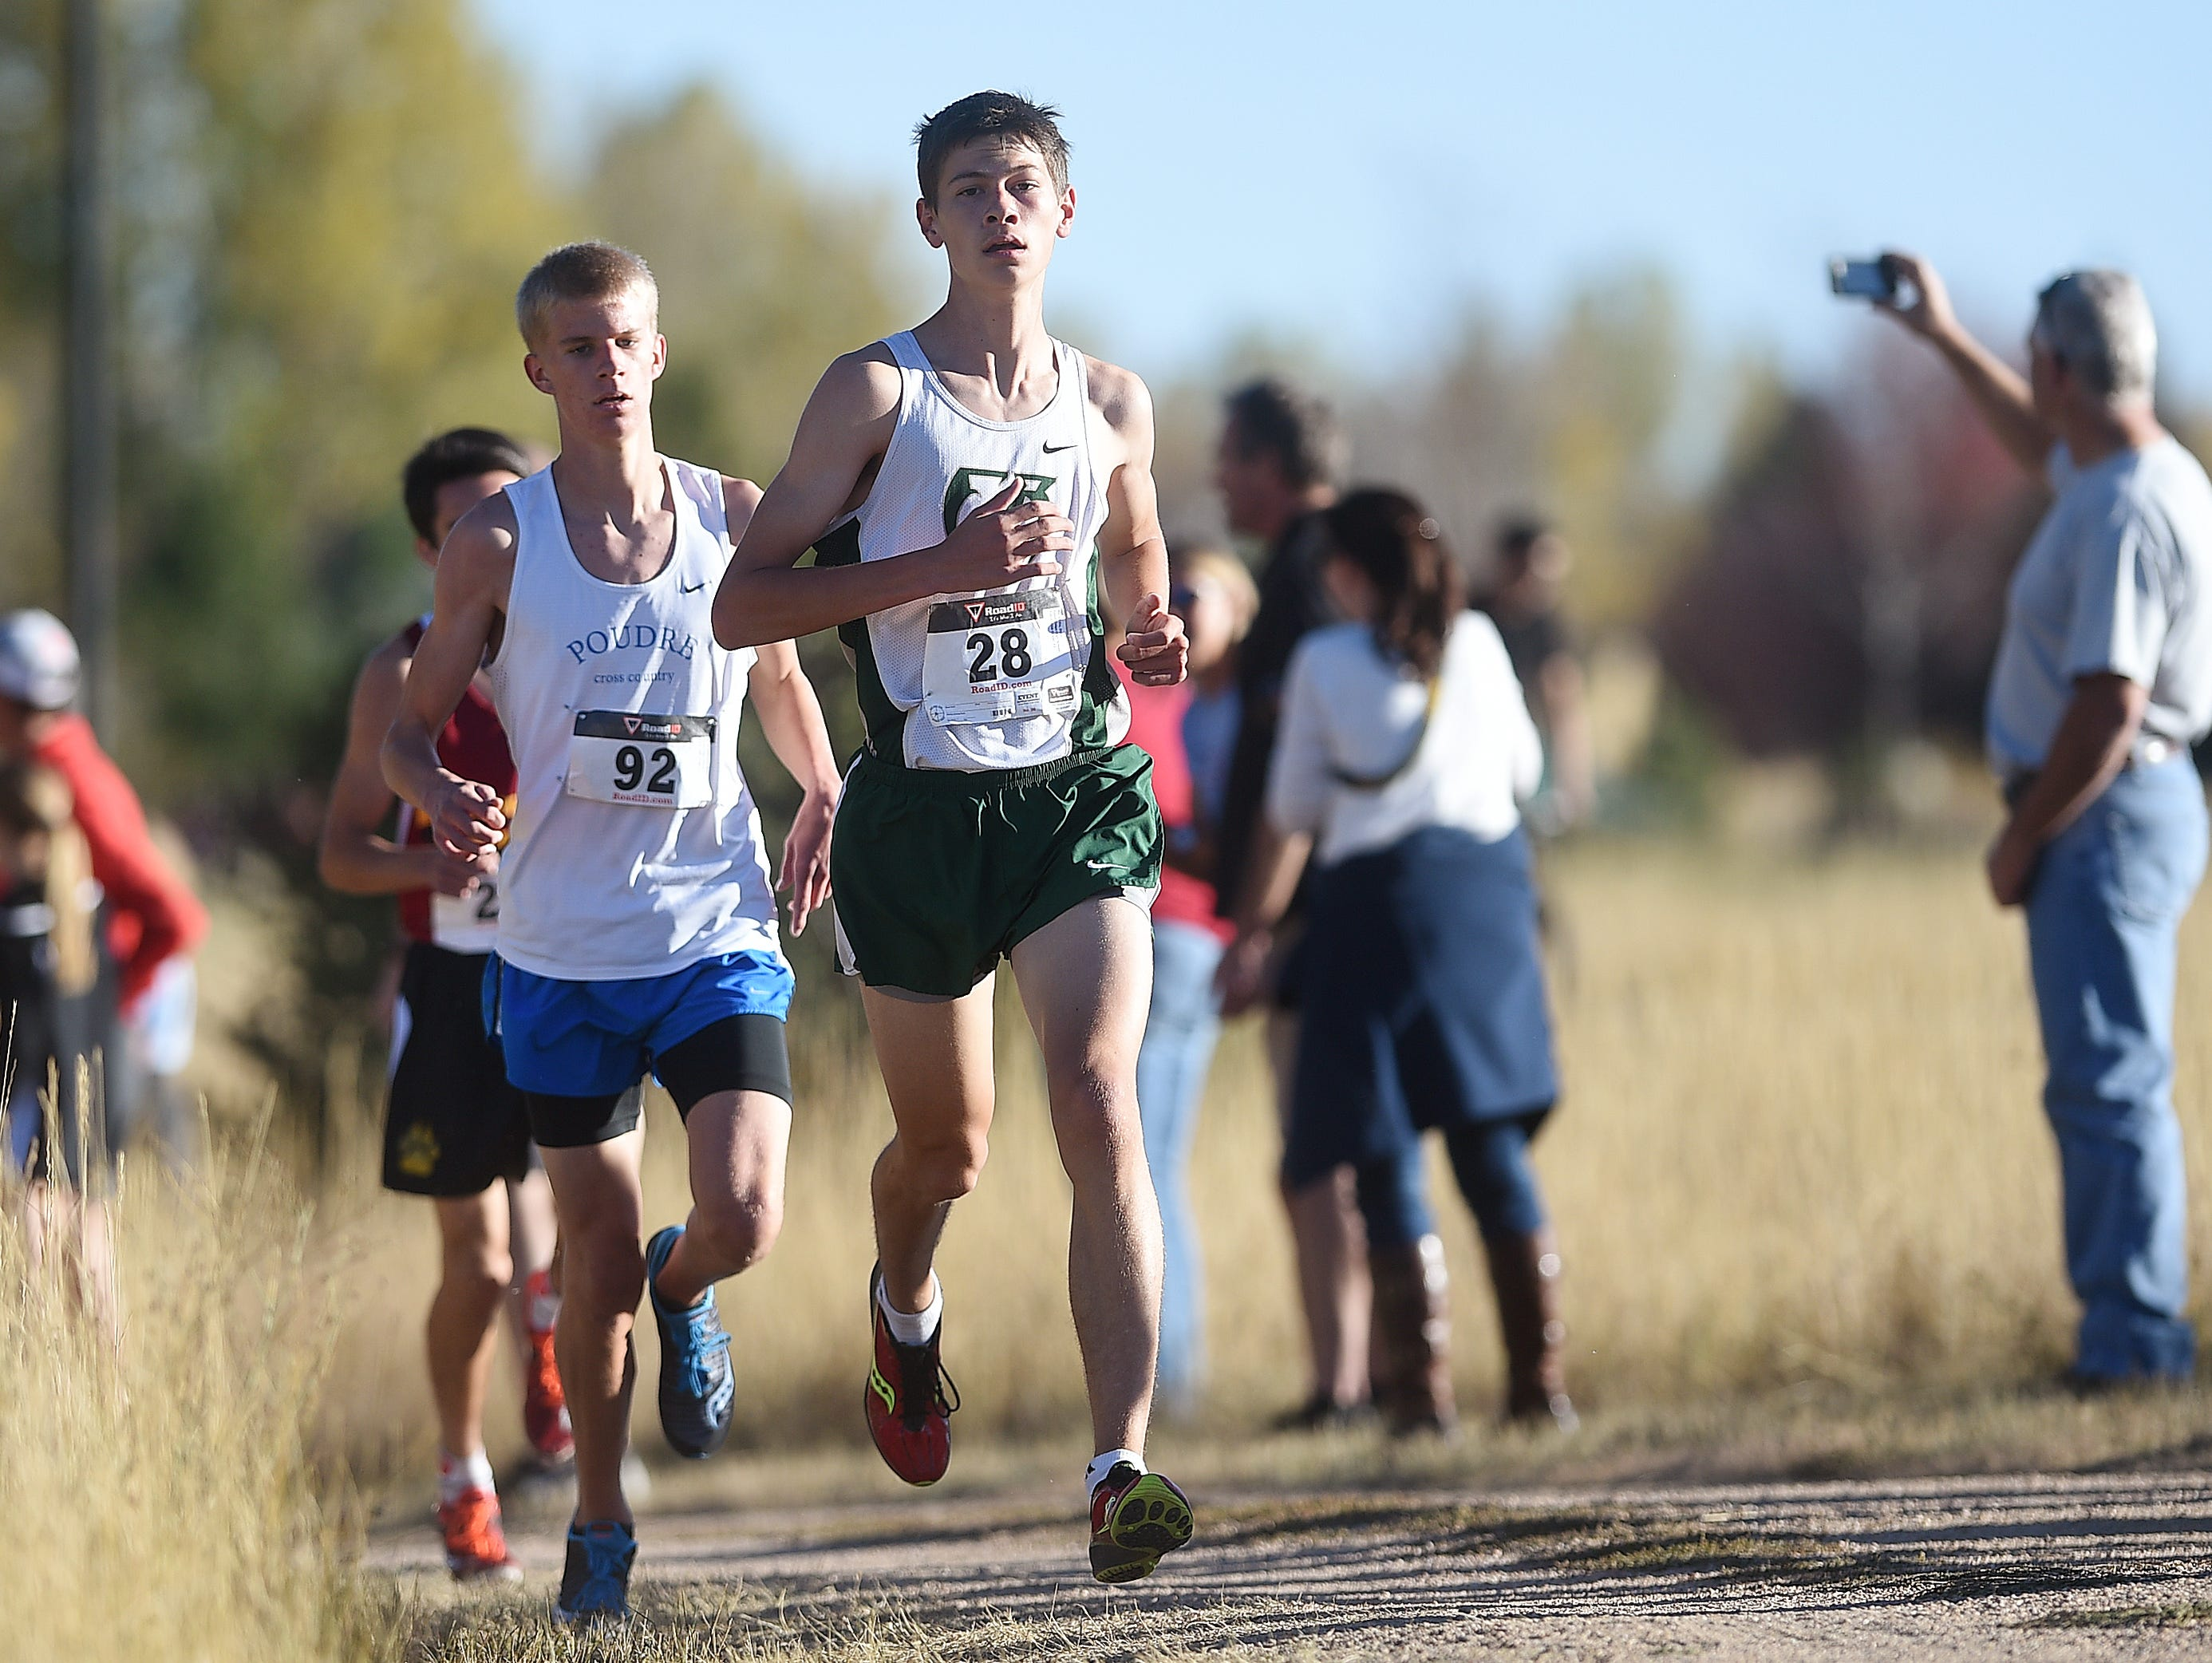 Poudre High School's Bryce Pietenpol, left, and Fossil Ridge High School's Dylan Ko run in the regional cross country meet at Spring Canyon Park on Friday, October 21, 2016.